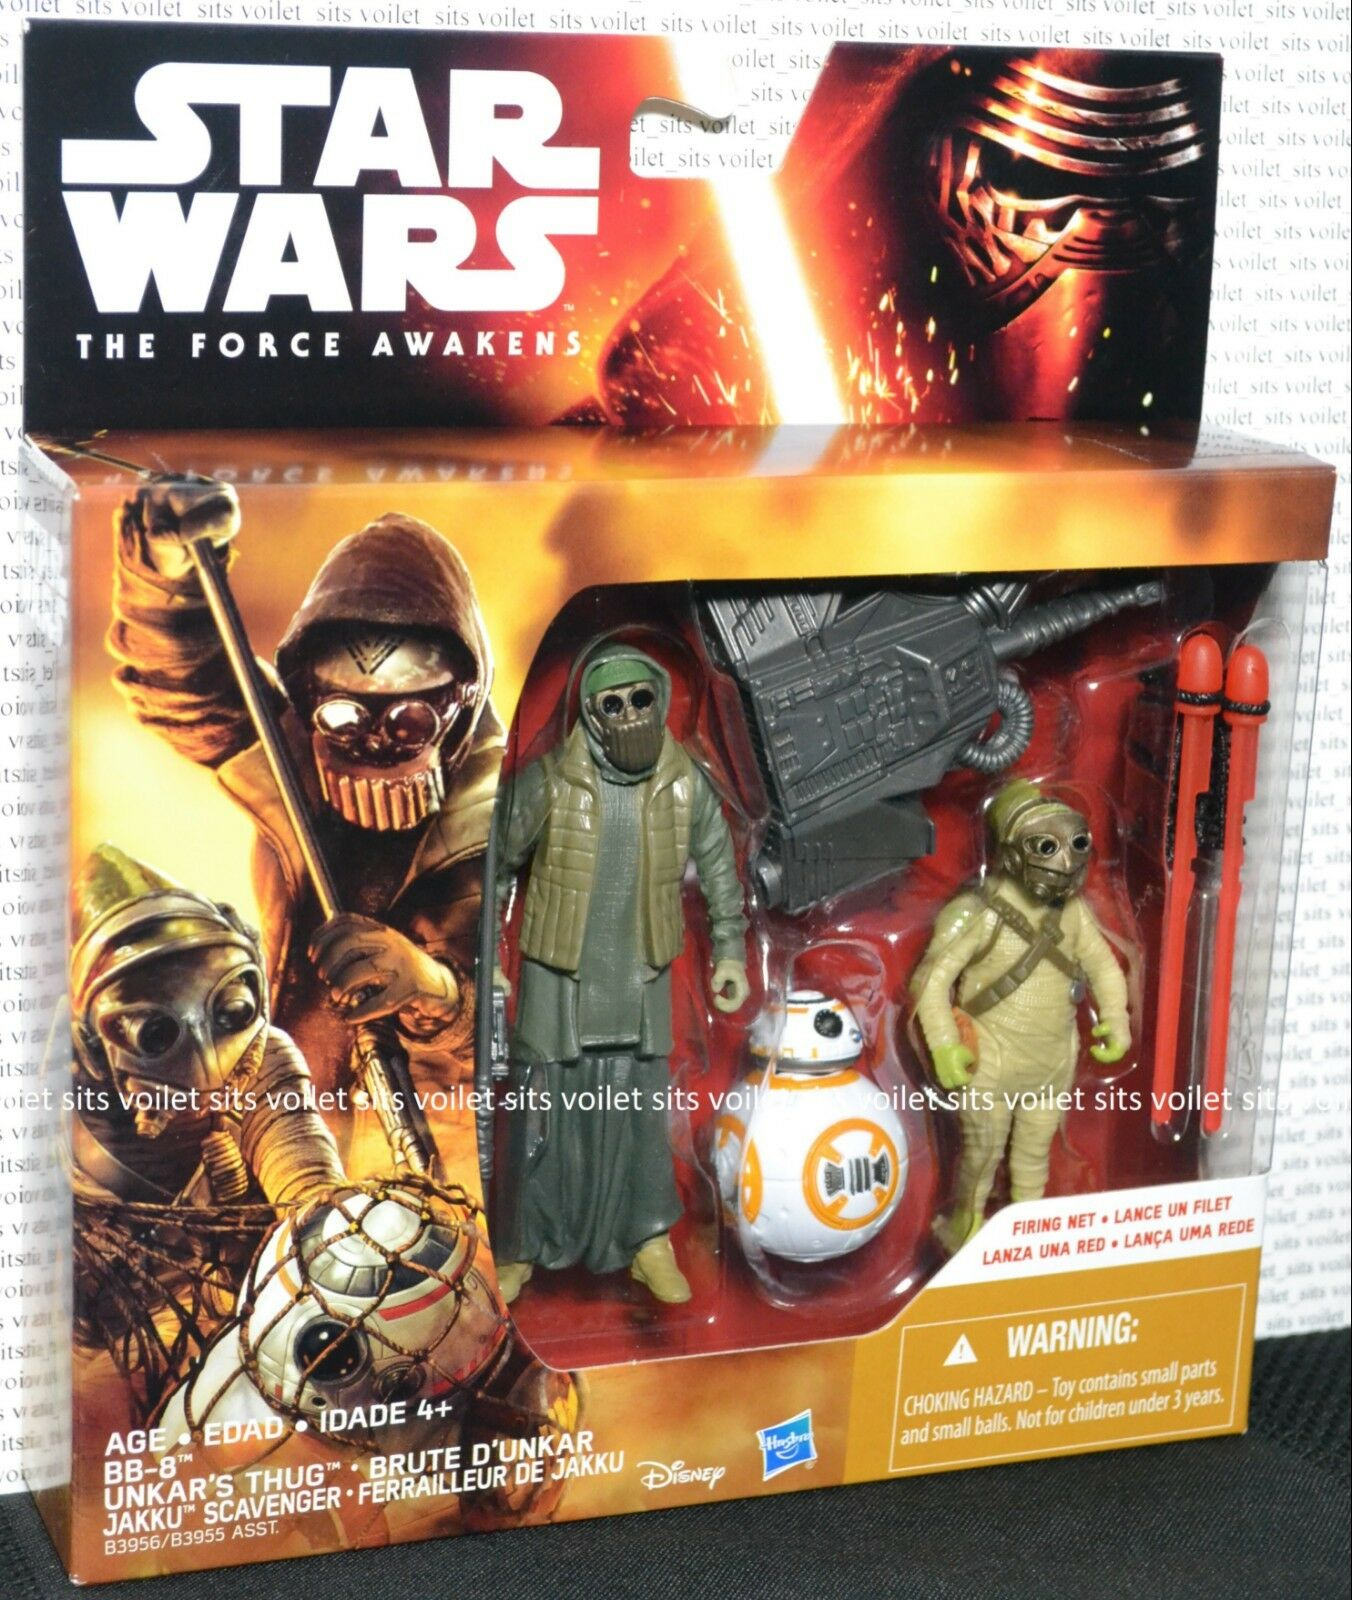 Star Wars The Force Awakens 3.75  Figures BB-8 Unkar's Thug Jakku Scavenger